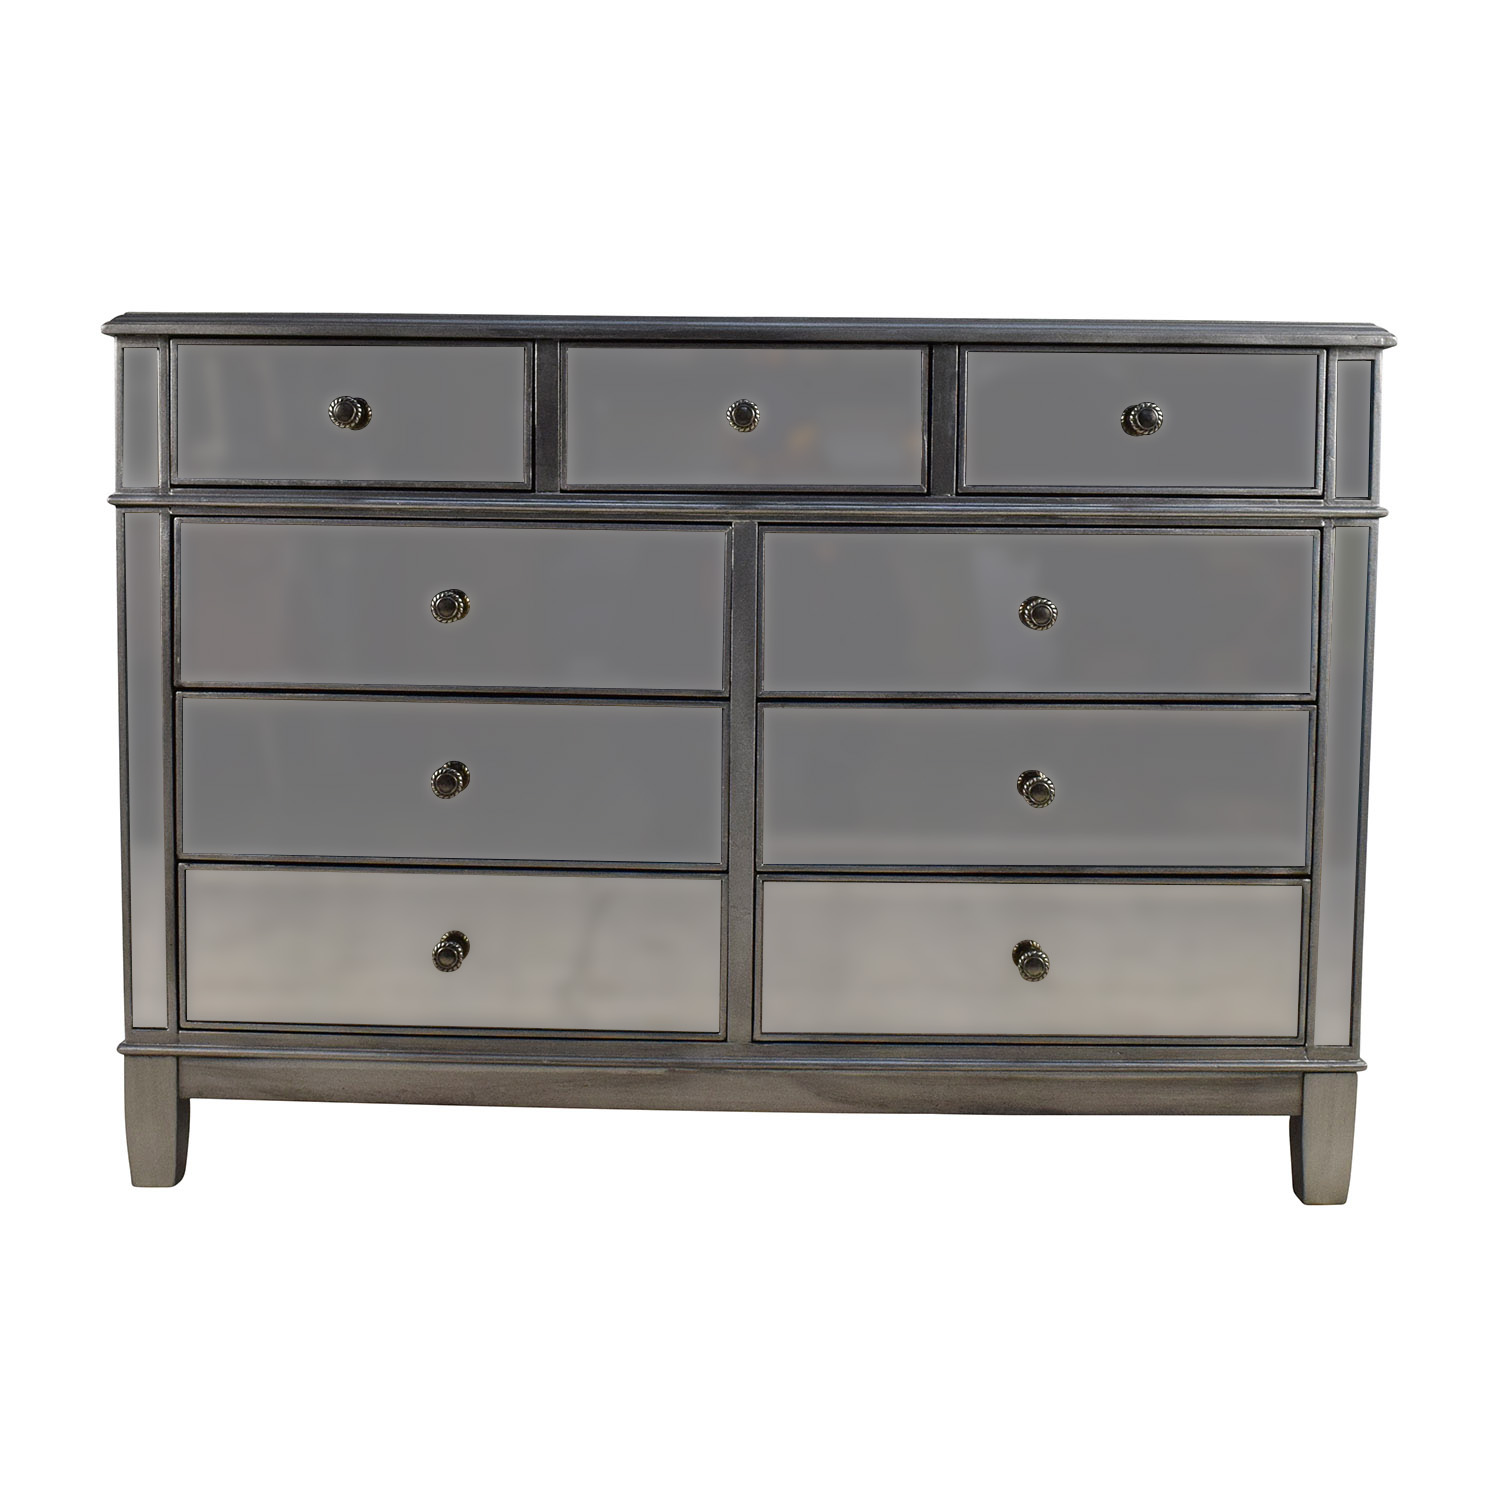 50 Off Pier 1 Pier 1 Hayworth Collection Mirrored Silver Dresser